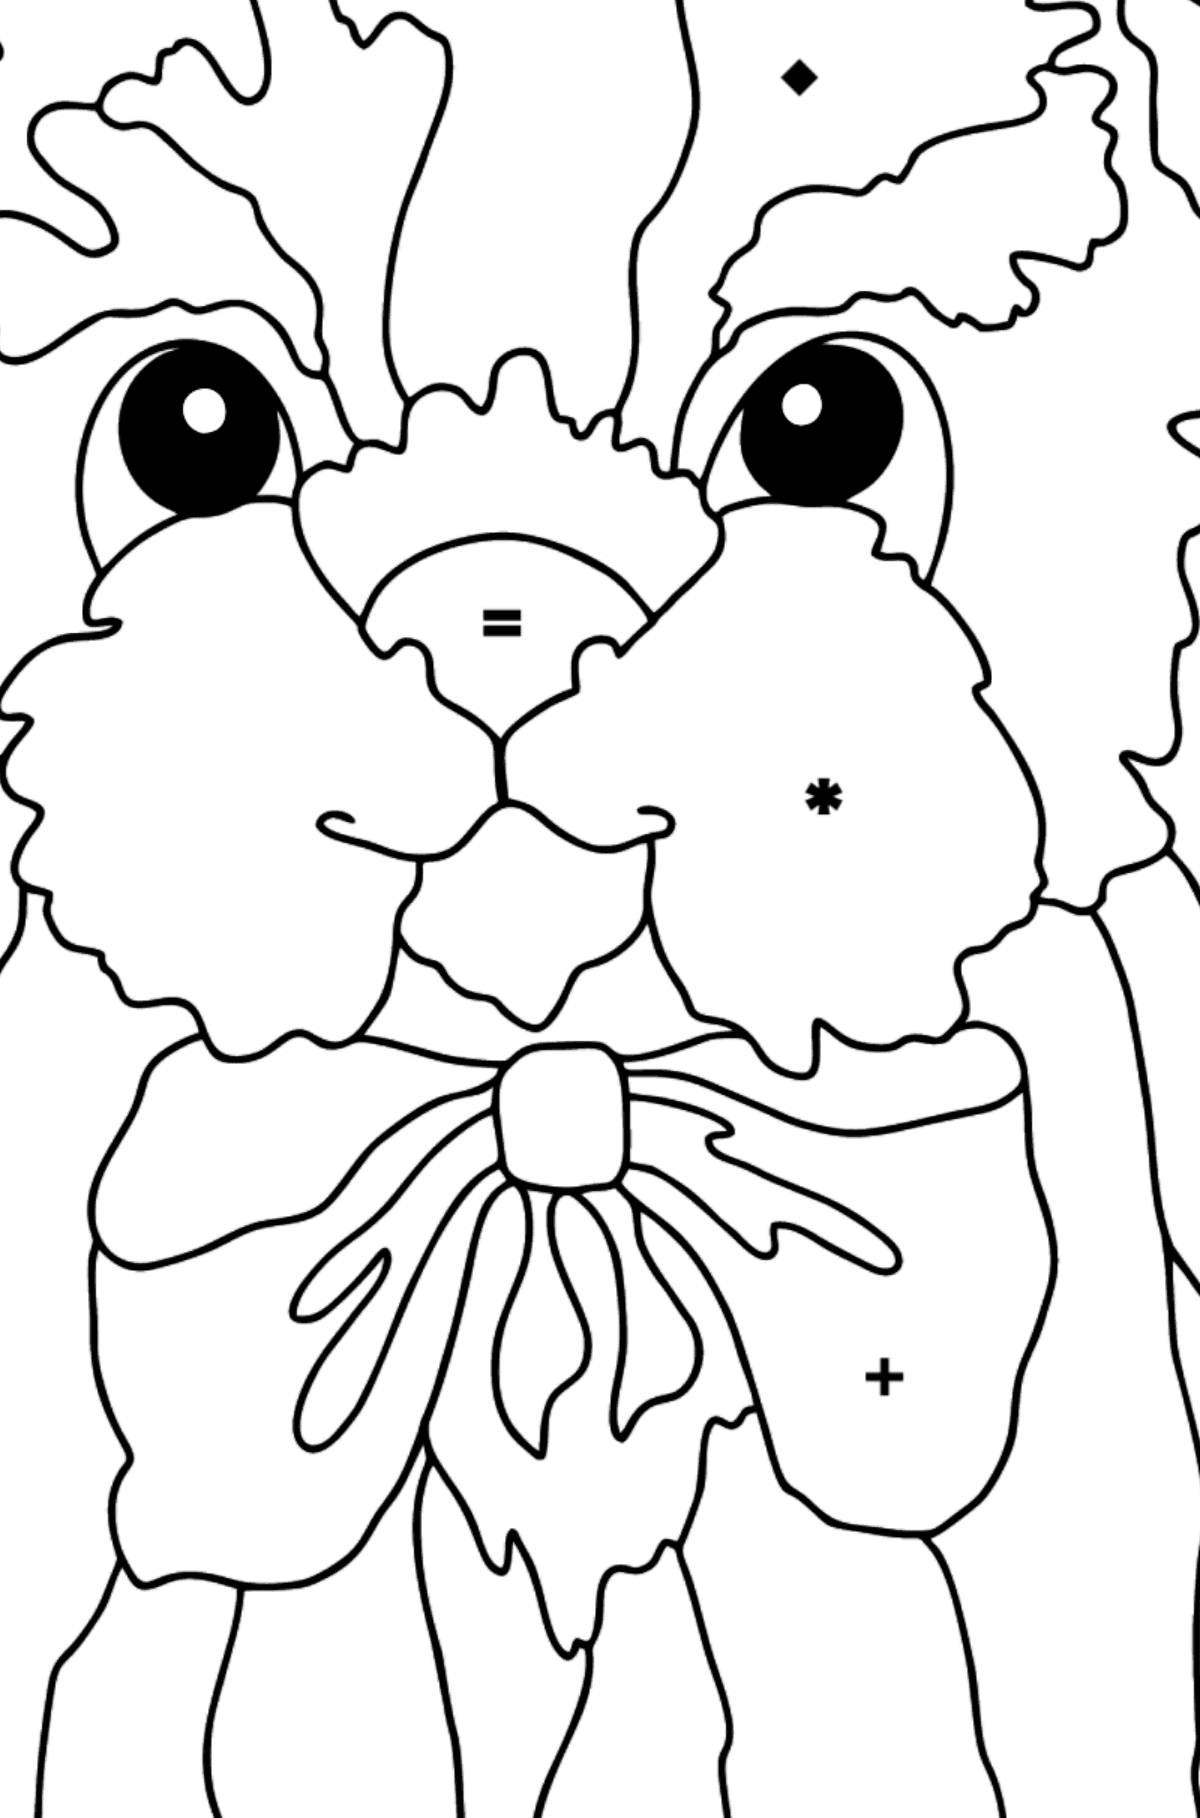 Coloring Page - A Young Fluffy Dog - Coloring by Symbols for Kids